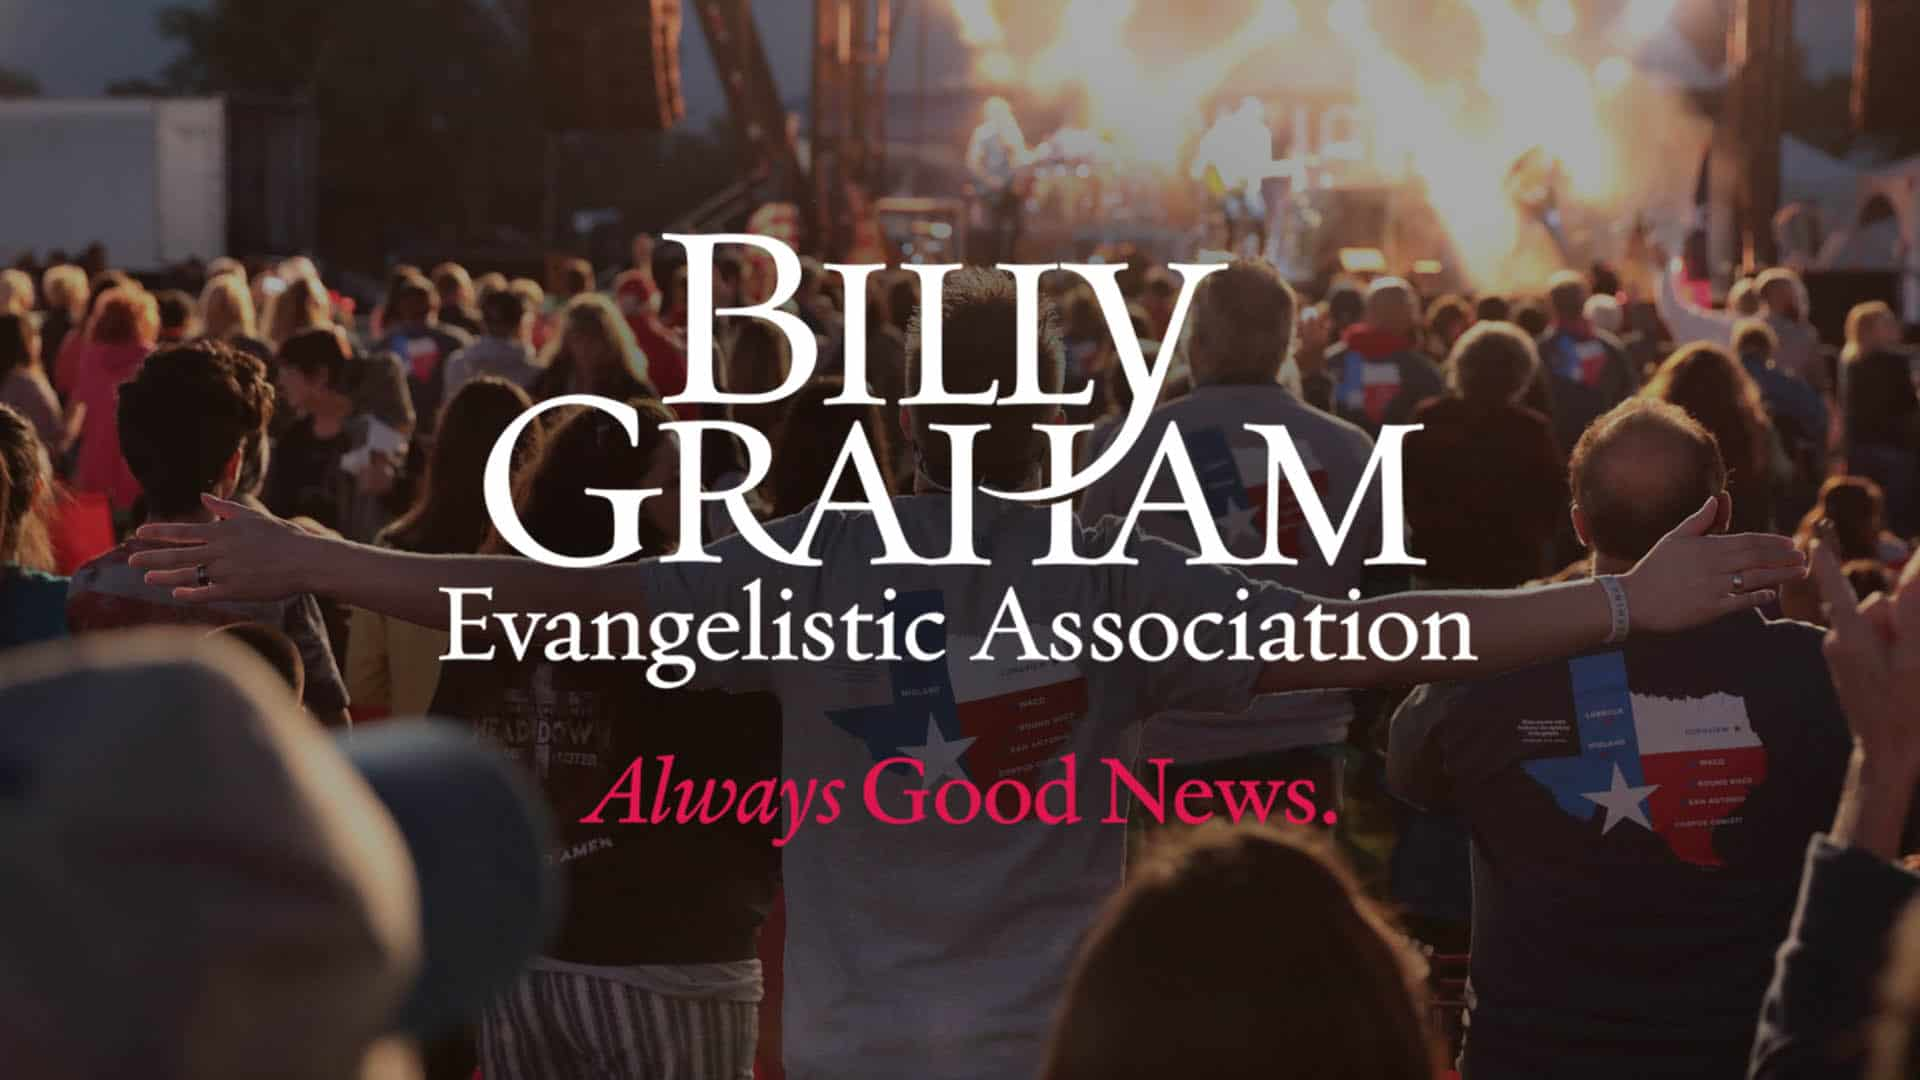 BPATTS - Billy Graham Design Work